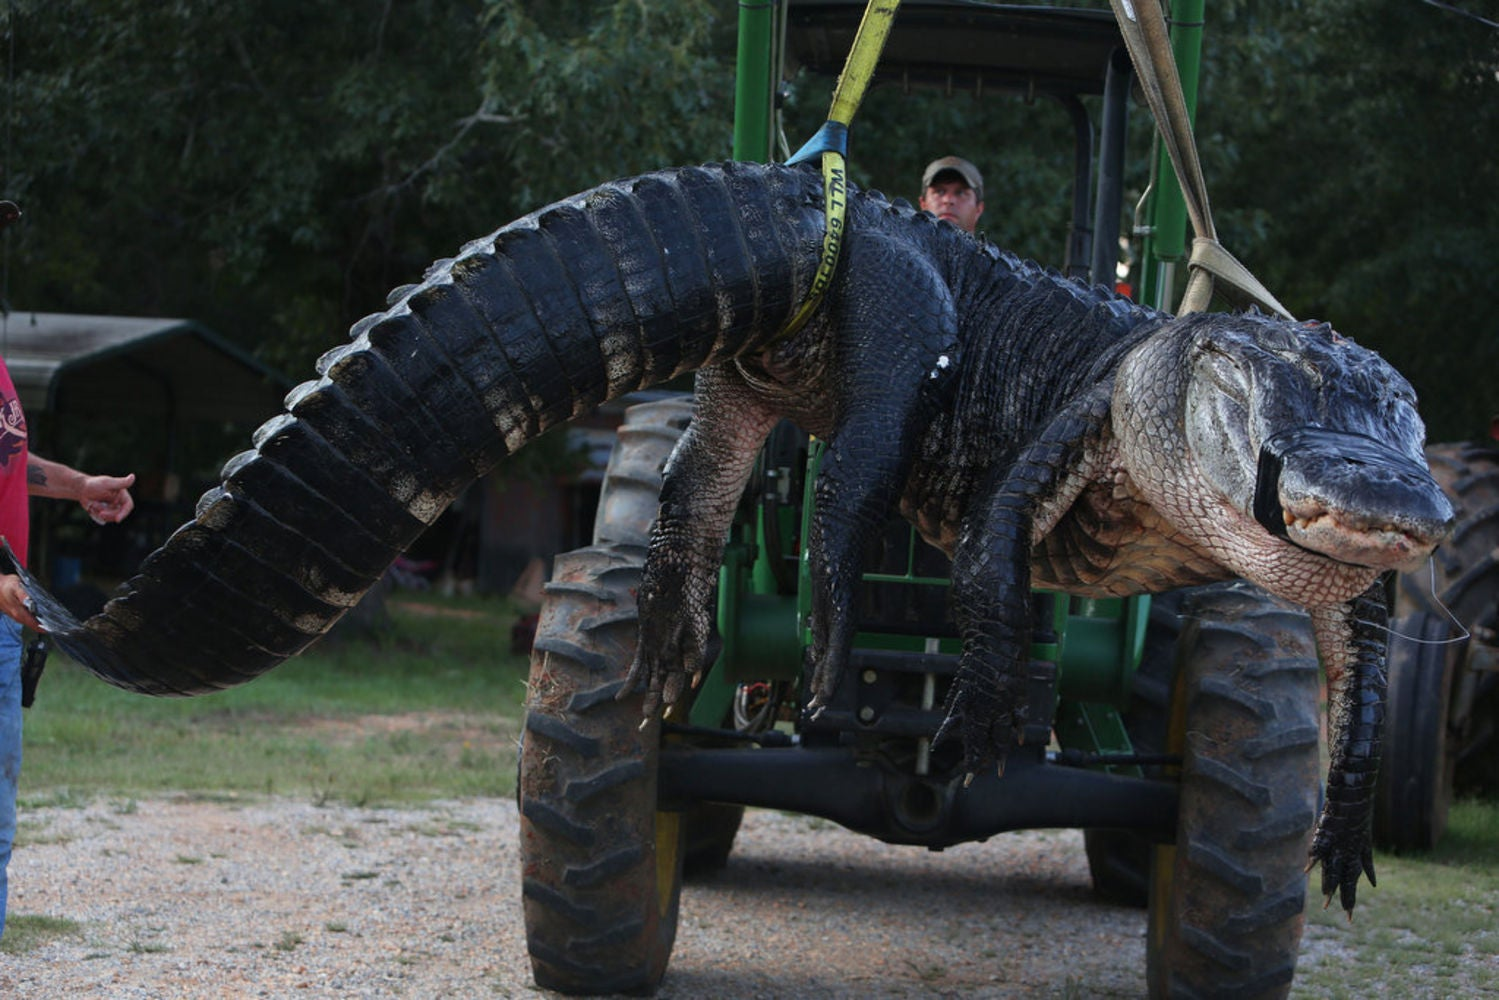 Largest American Alligator Ever Taken Toyota Fj